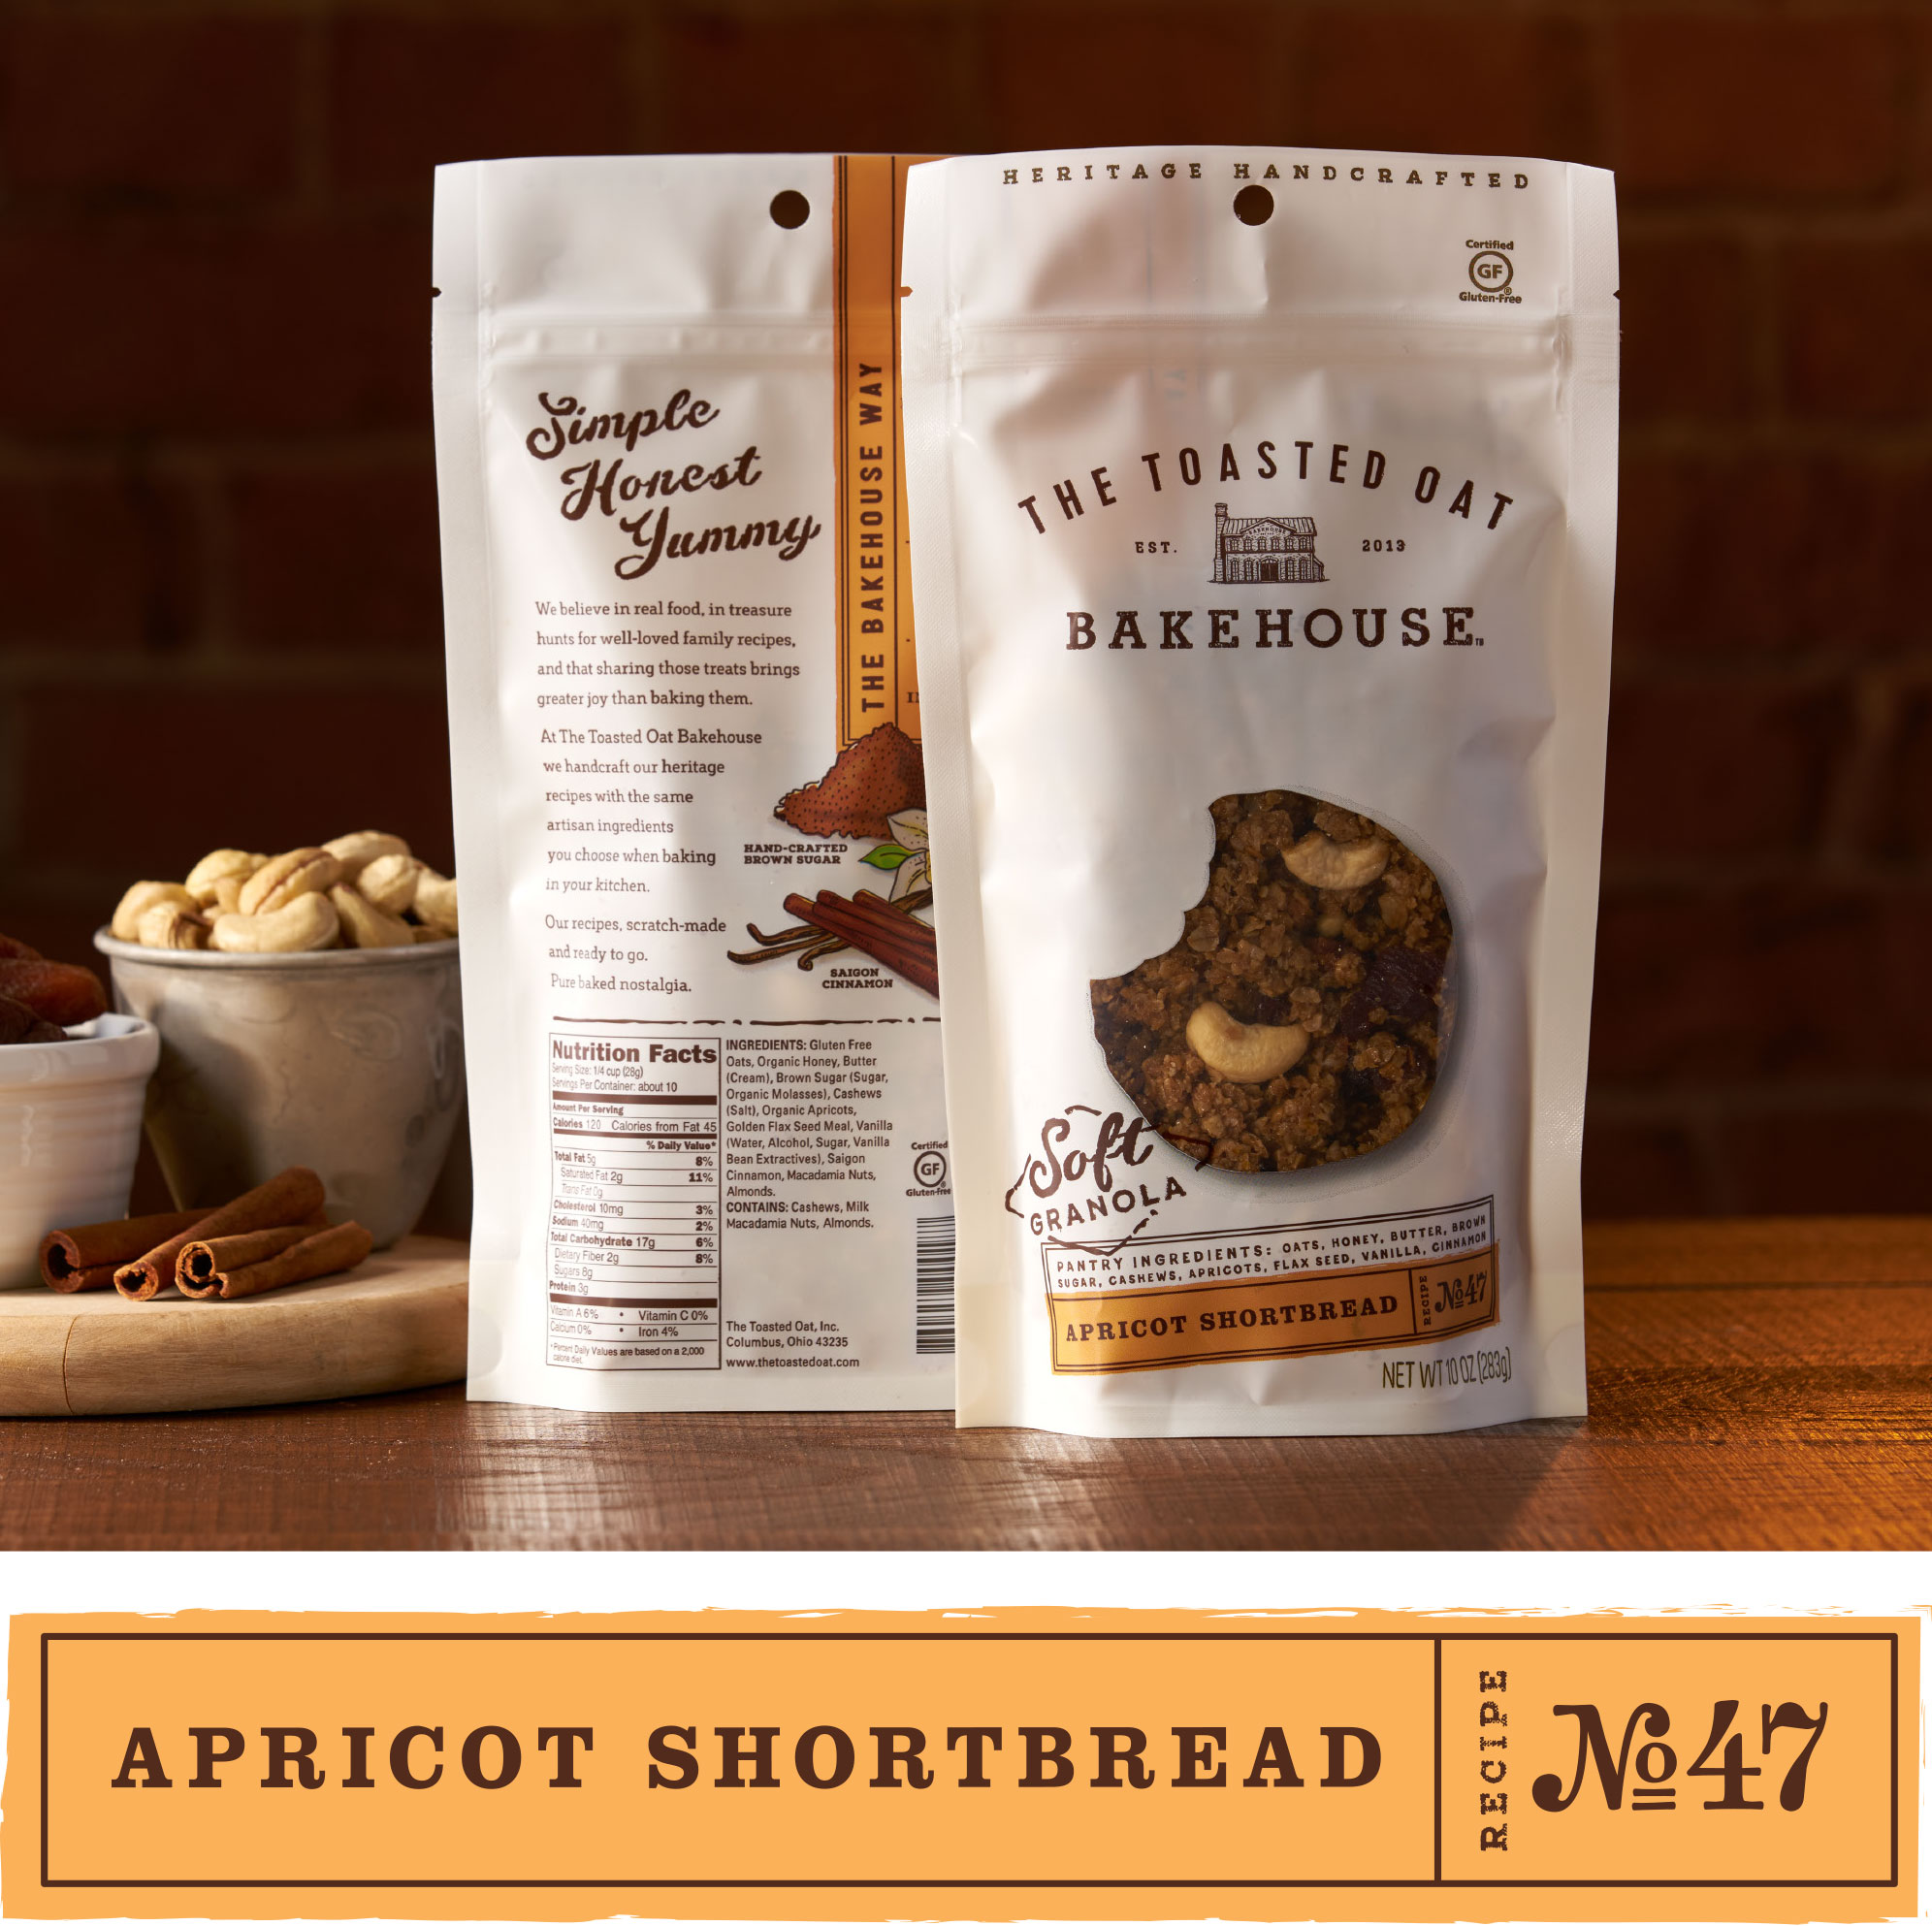 Apricot Shortbread   No. 47   The Toasted Oat